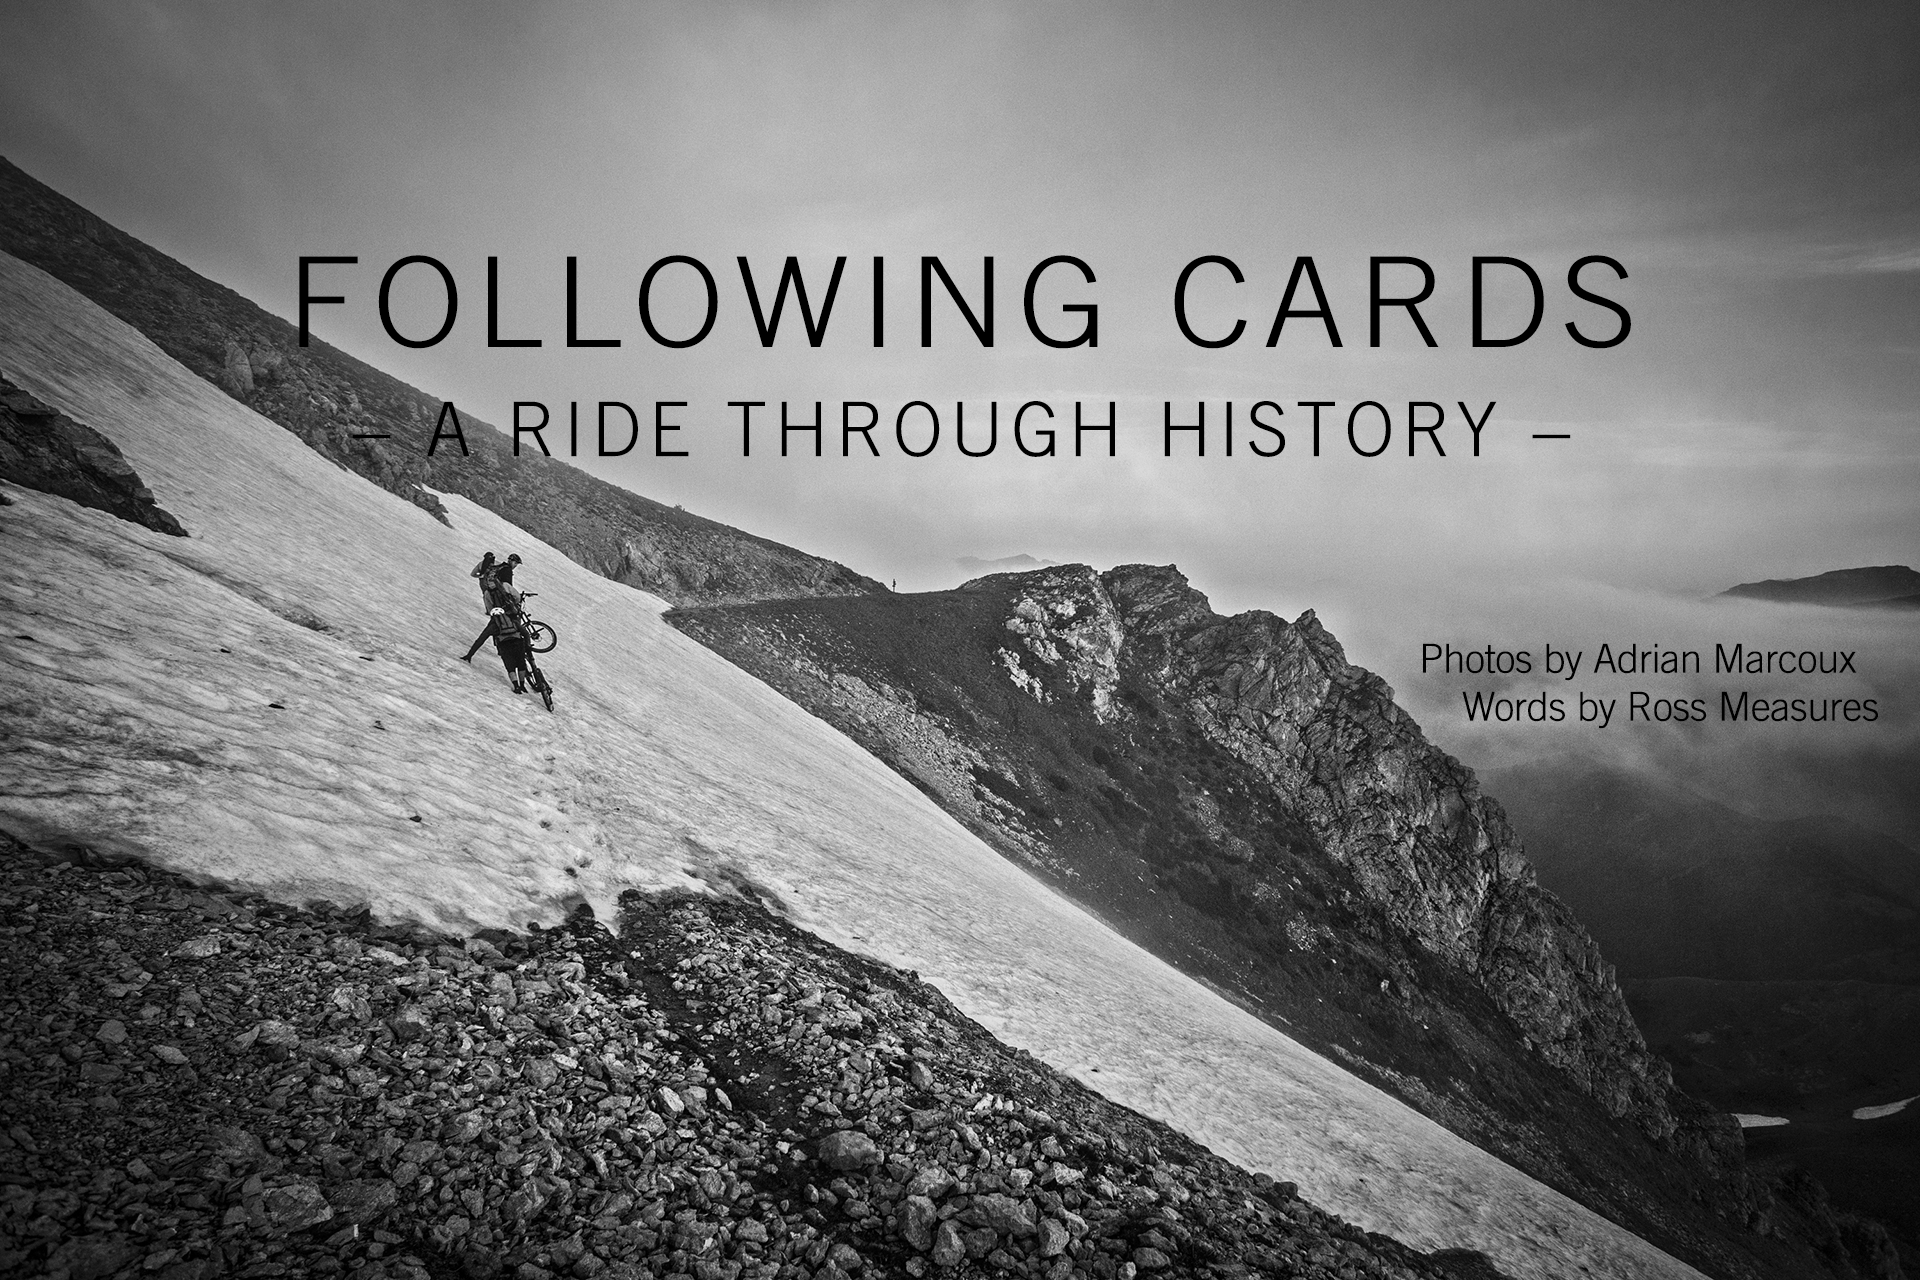 Following Cards